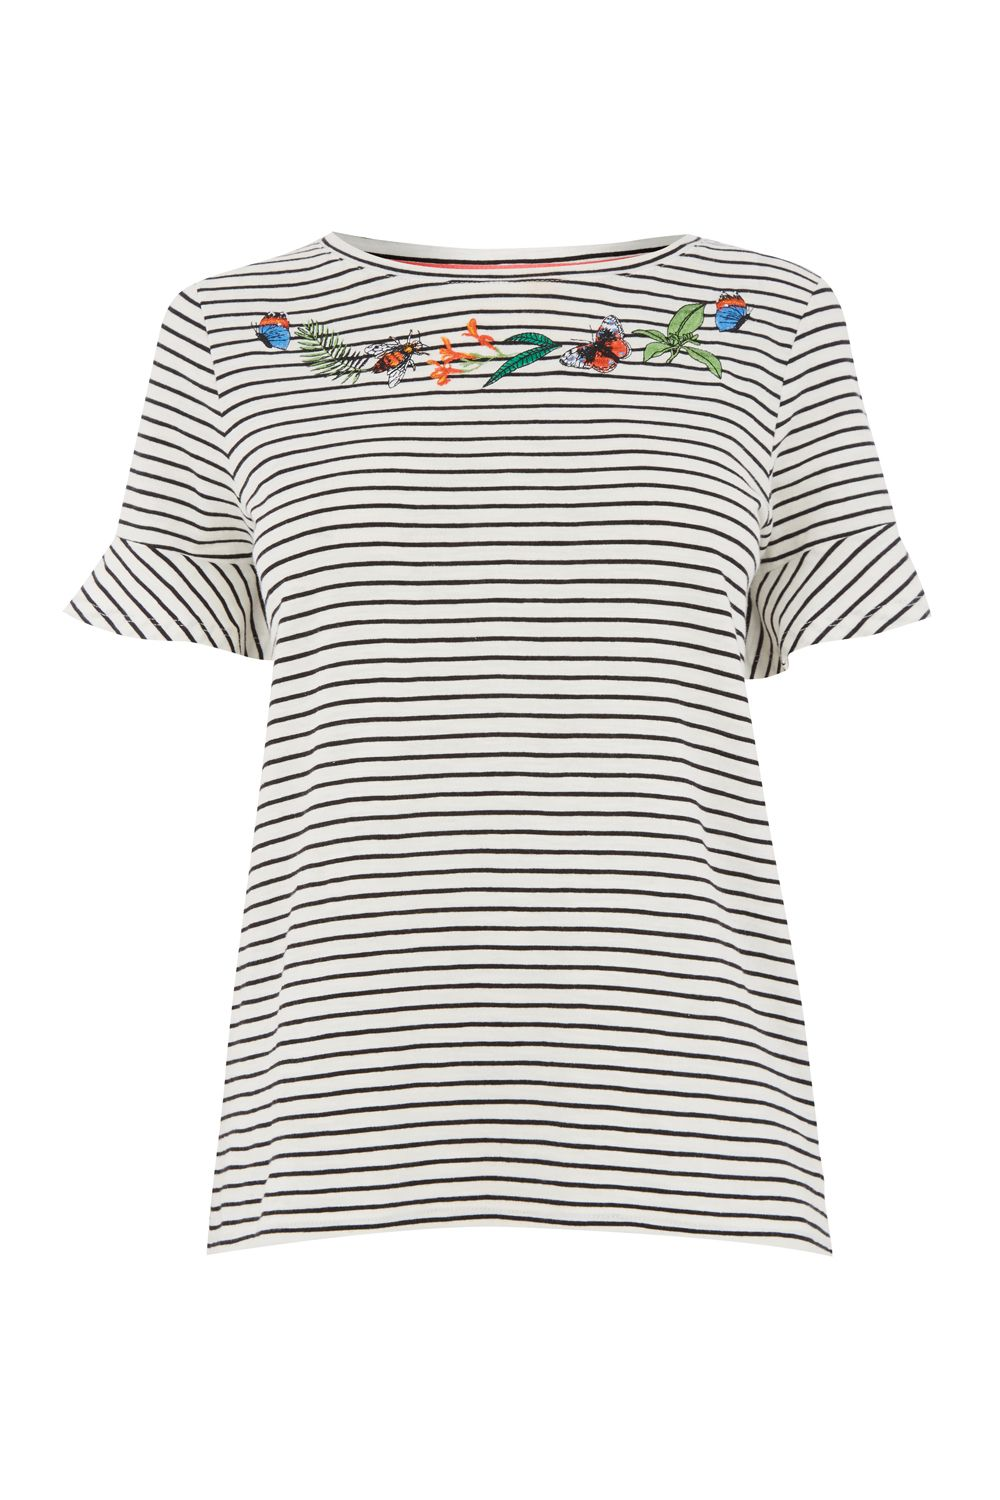 Oasis ZSL STRIPE FLUTE SLEEVE TEE, Multi-Coloured